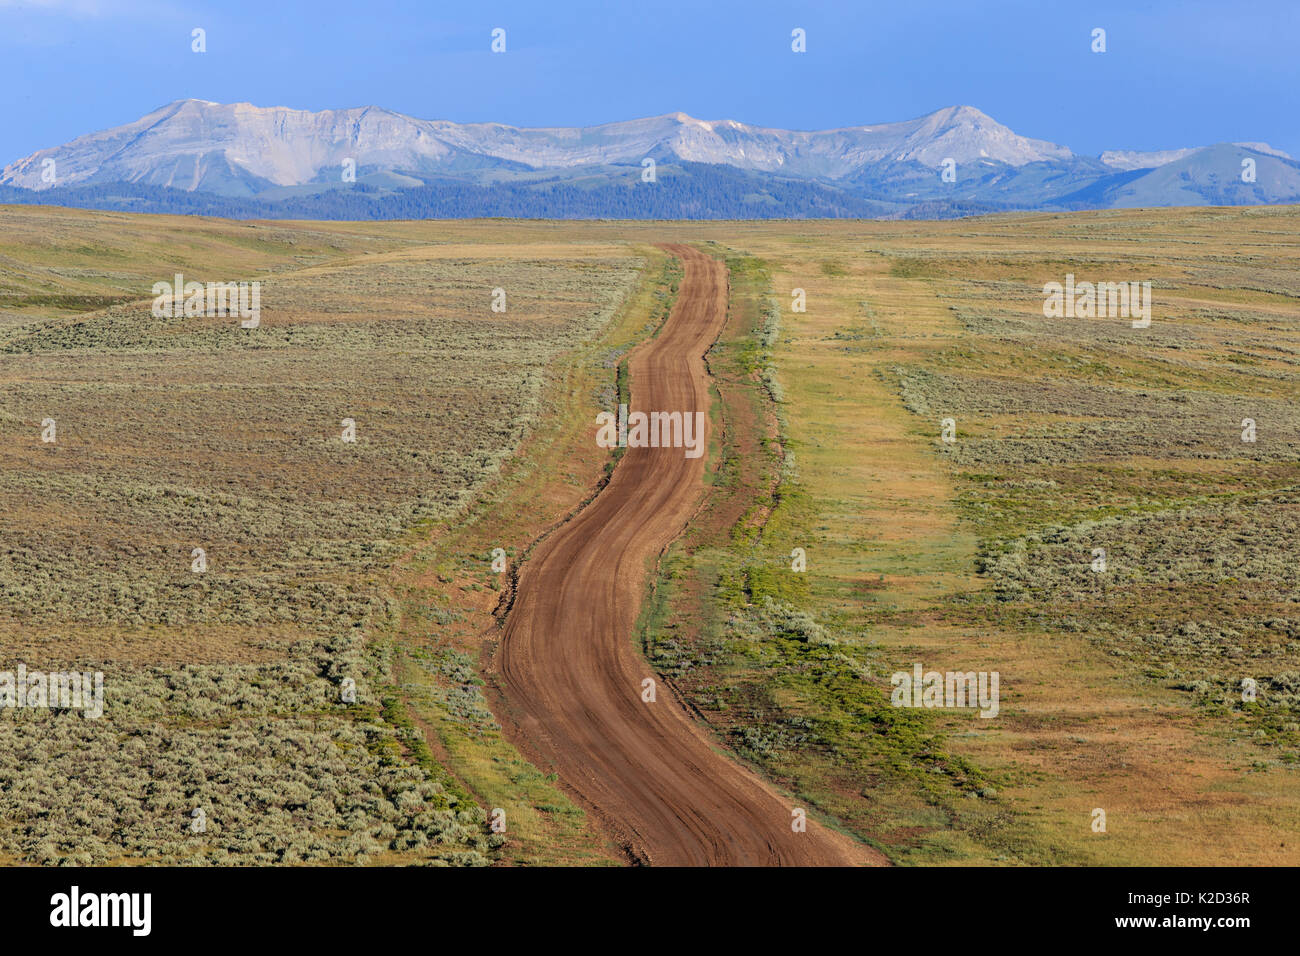 Road running through the sagebush steppe land in the Ryegrass BLM (Bureau of Land Management) area towards the Wyoming Mountain Range. Sublette County, Wyoming, USA. July. - Stock Image